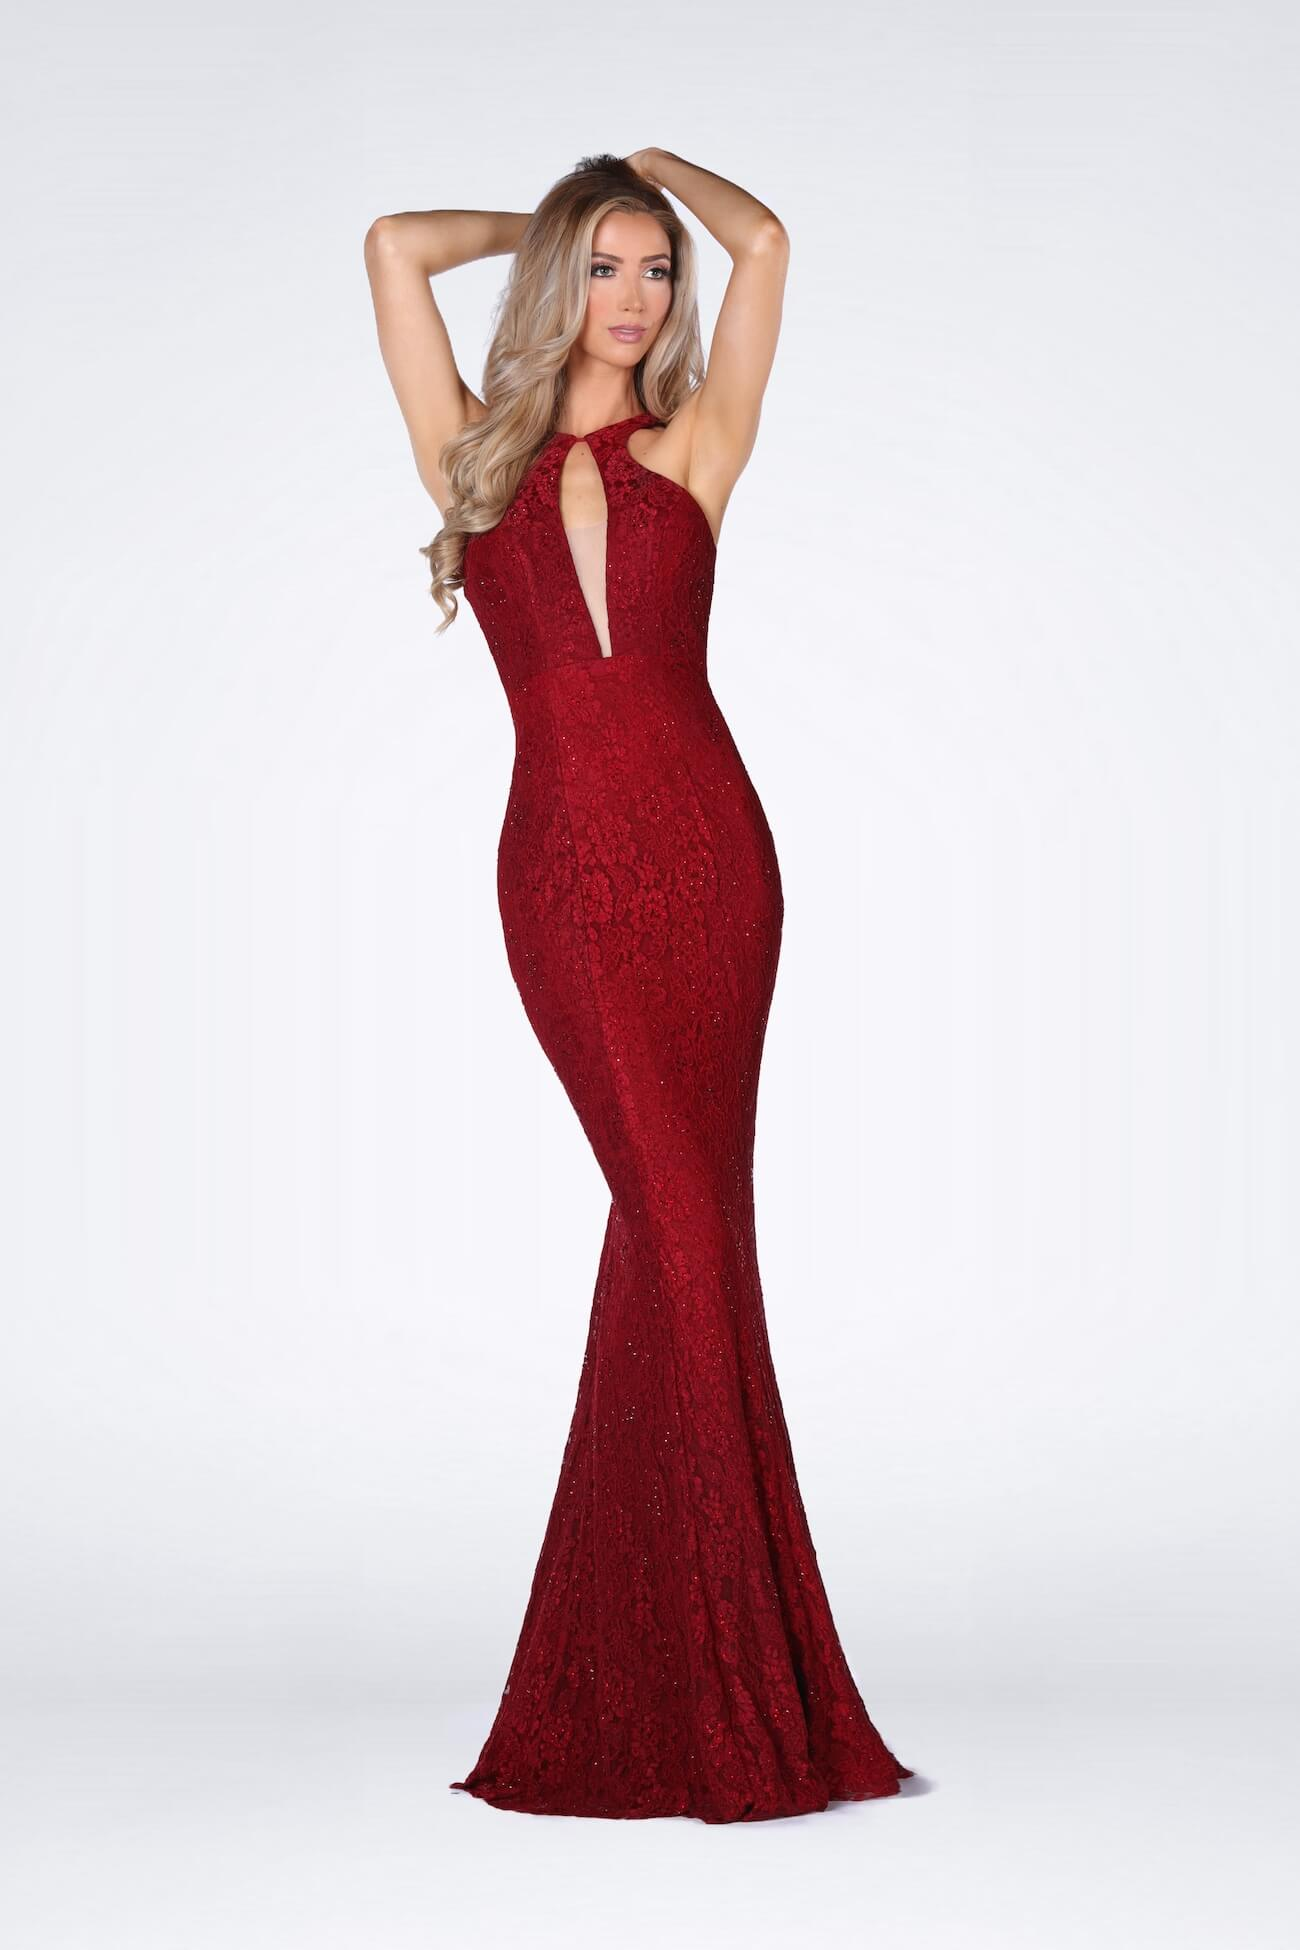 Vienna Red Size 6 Floral Halter Backless Mermaid Dress on Queenly